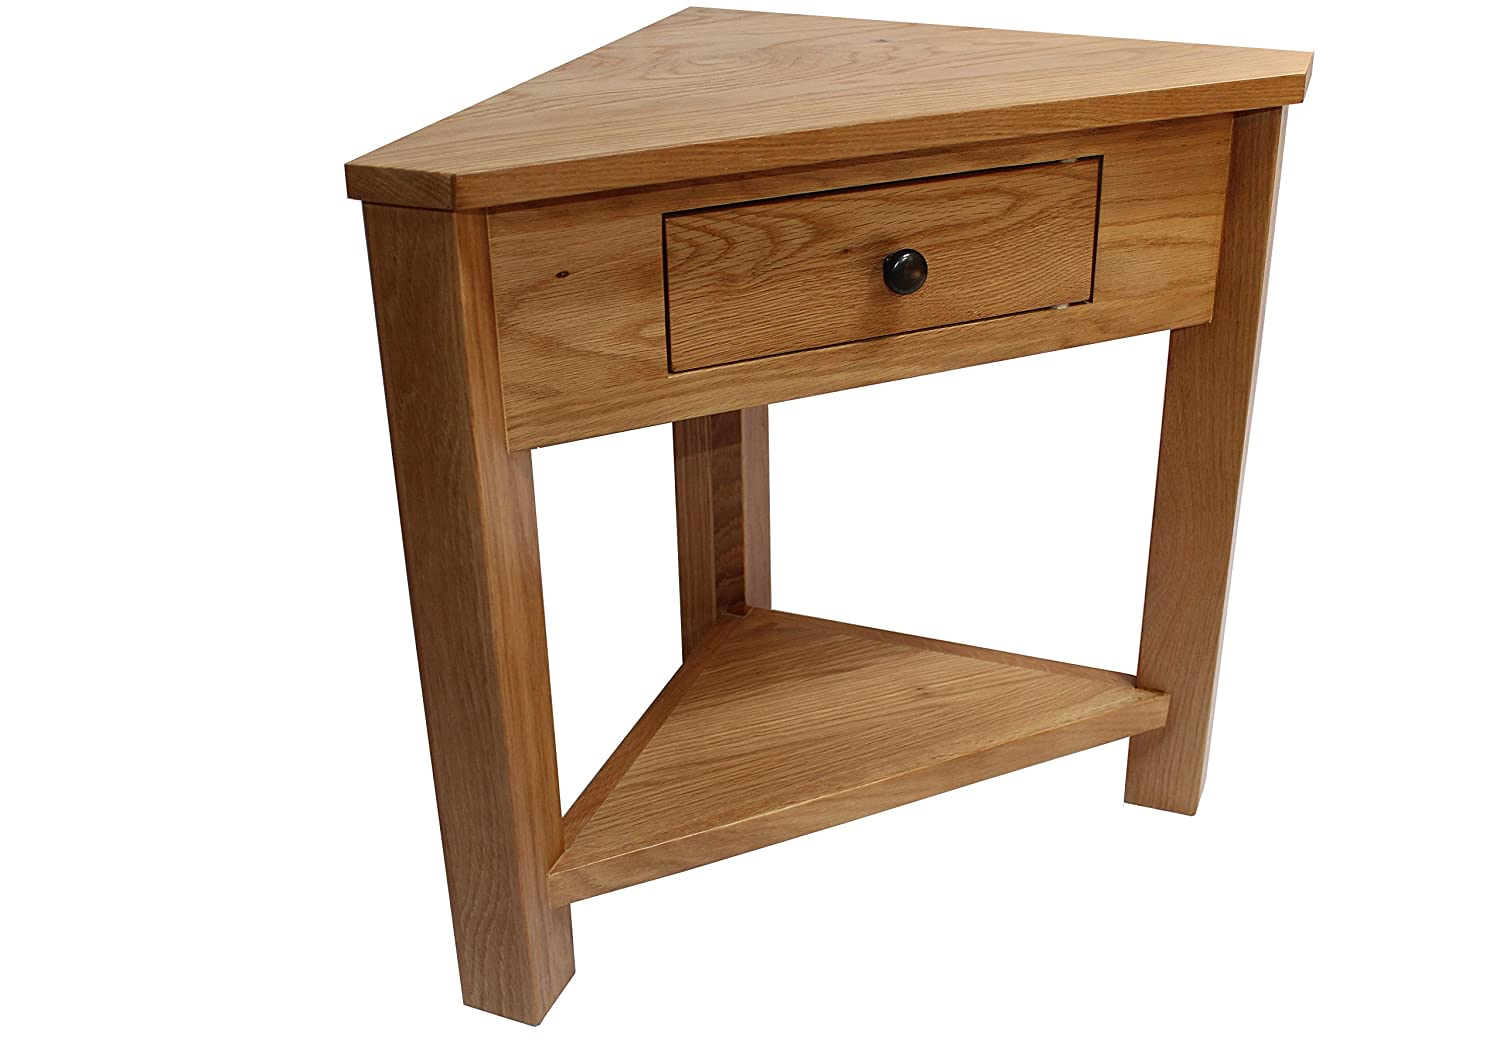 small hall furniture. oak corner table plantstand lamptable small hallway onedrawer display shelf livingroom dinning amazoncouk kitchen u0026 home hall furniture